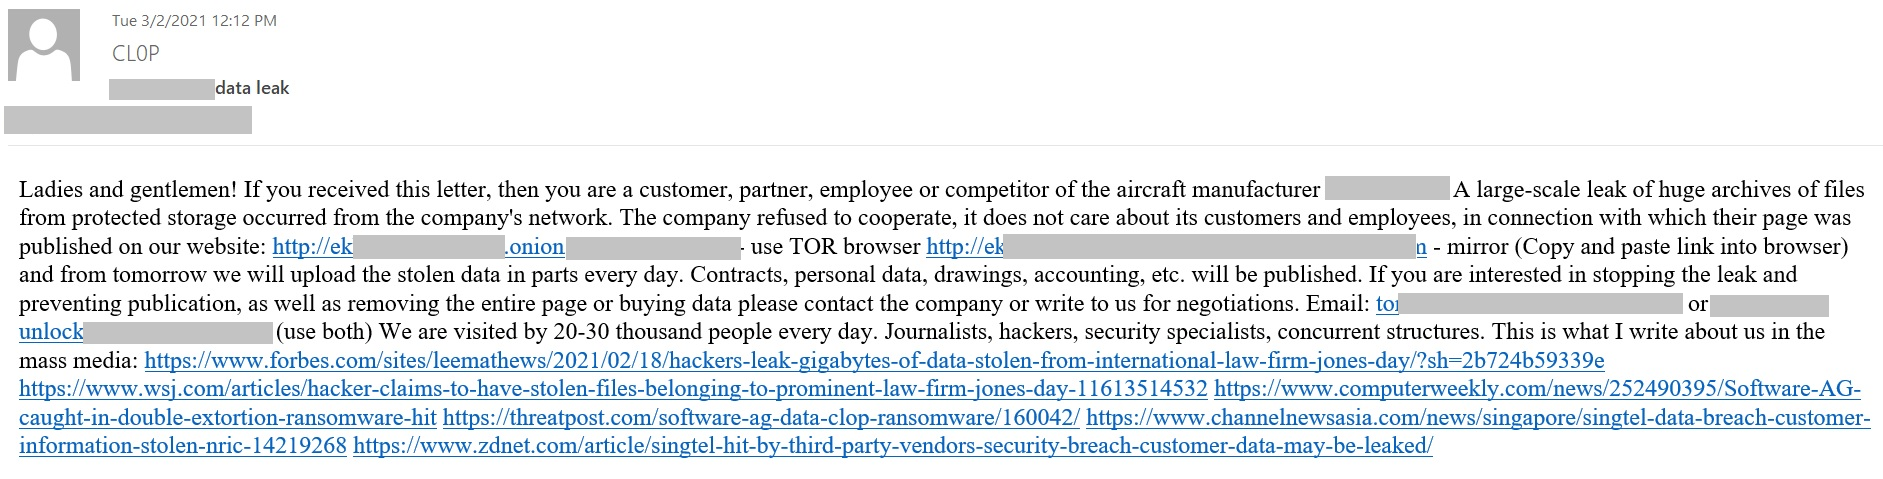 The attackers' e-mail to employees, clients, partners, and competitors.